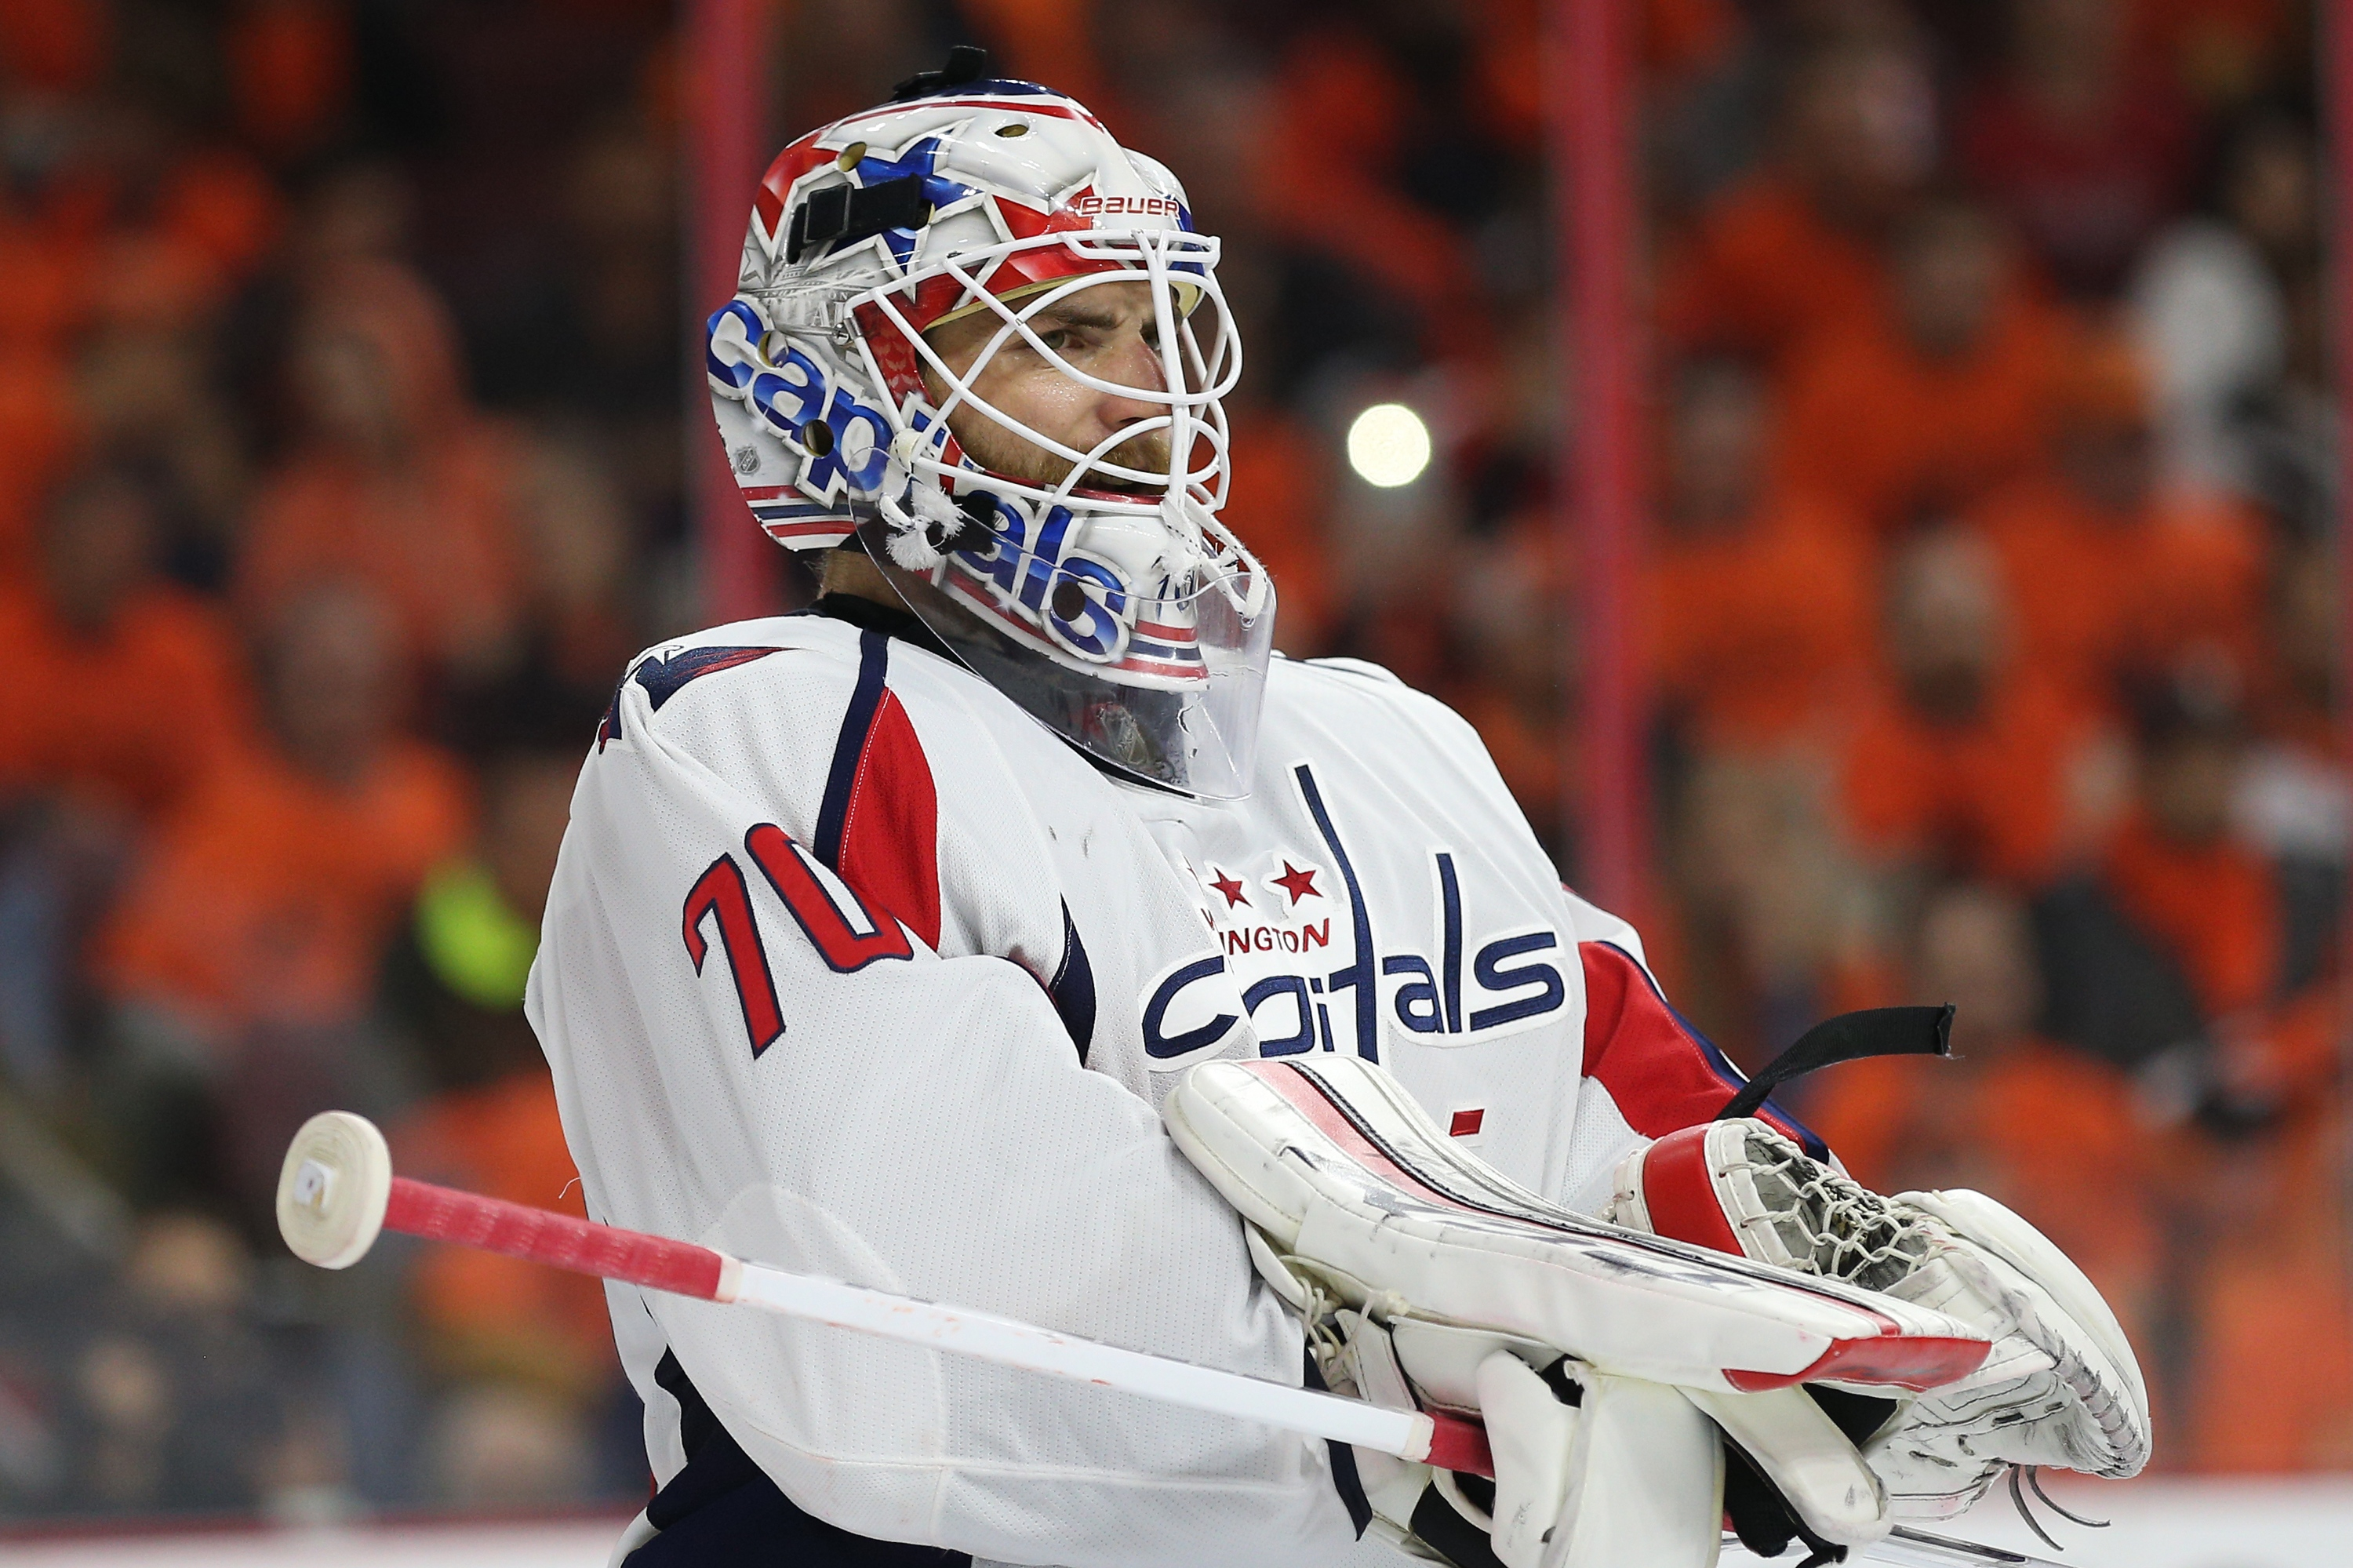 PHILADELPHIA, PA - APRIL 24: Goalie Braden Holtby #70 of the Washington Capitals looks on against the Philadelphia Flyers during the second period in Game Six of the Eastern Conference Quarterfinals during the 2016 NHL Stanley Cup Playoffs at Wells Fargo Center on April 24, 2016 in Philadelphia, Pennsylvania. (Photo by Patrick Smith/Getty Images)